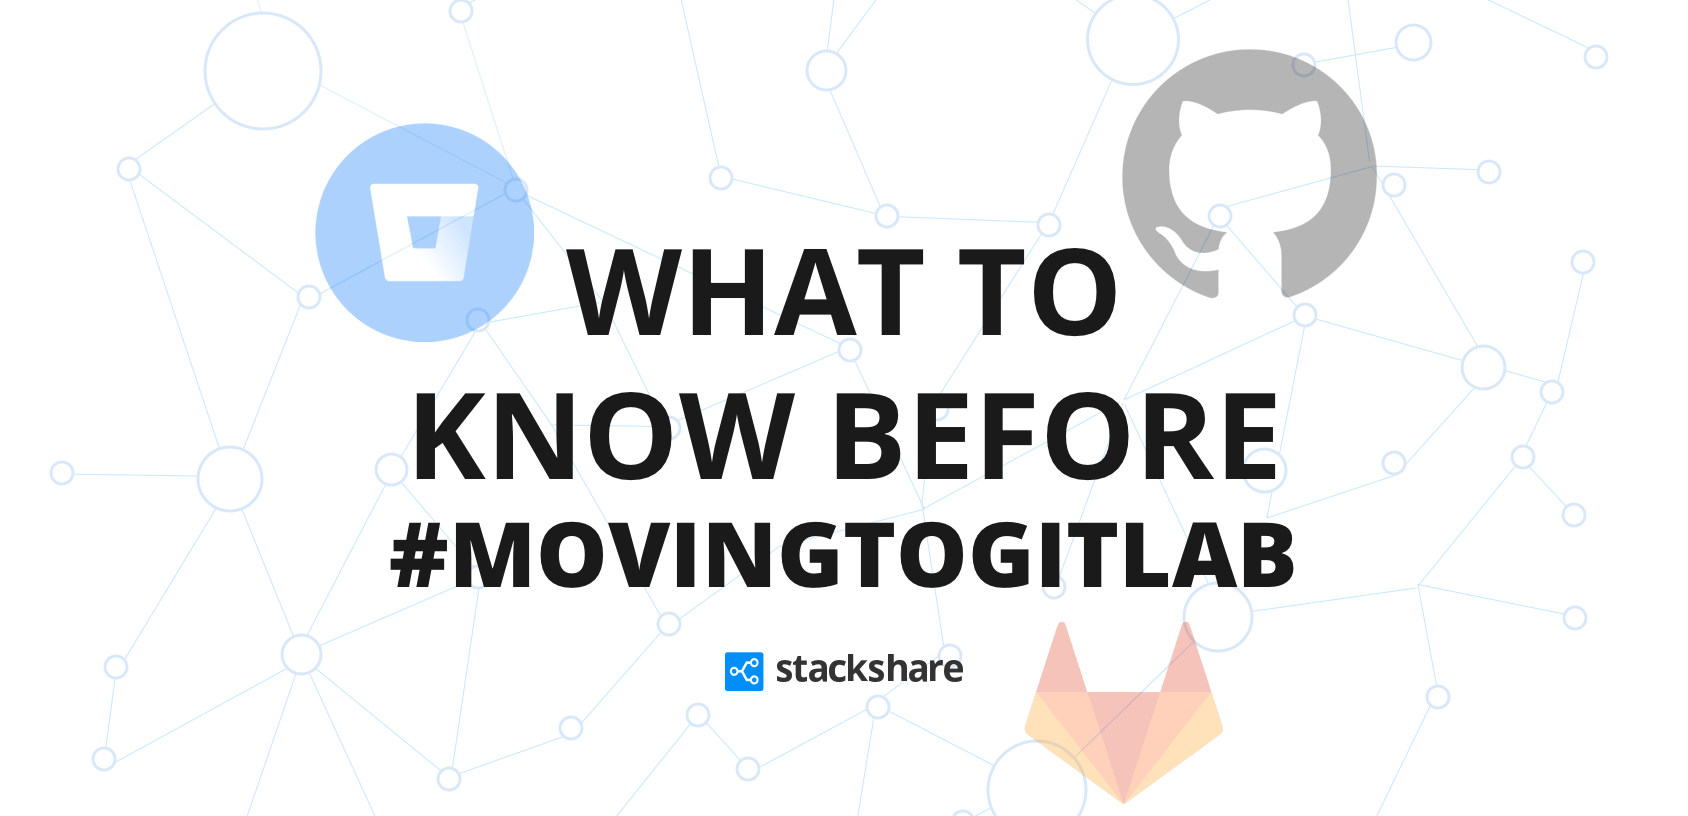 Moving to GitLab or Bitbucket